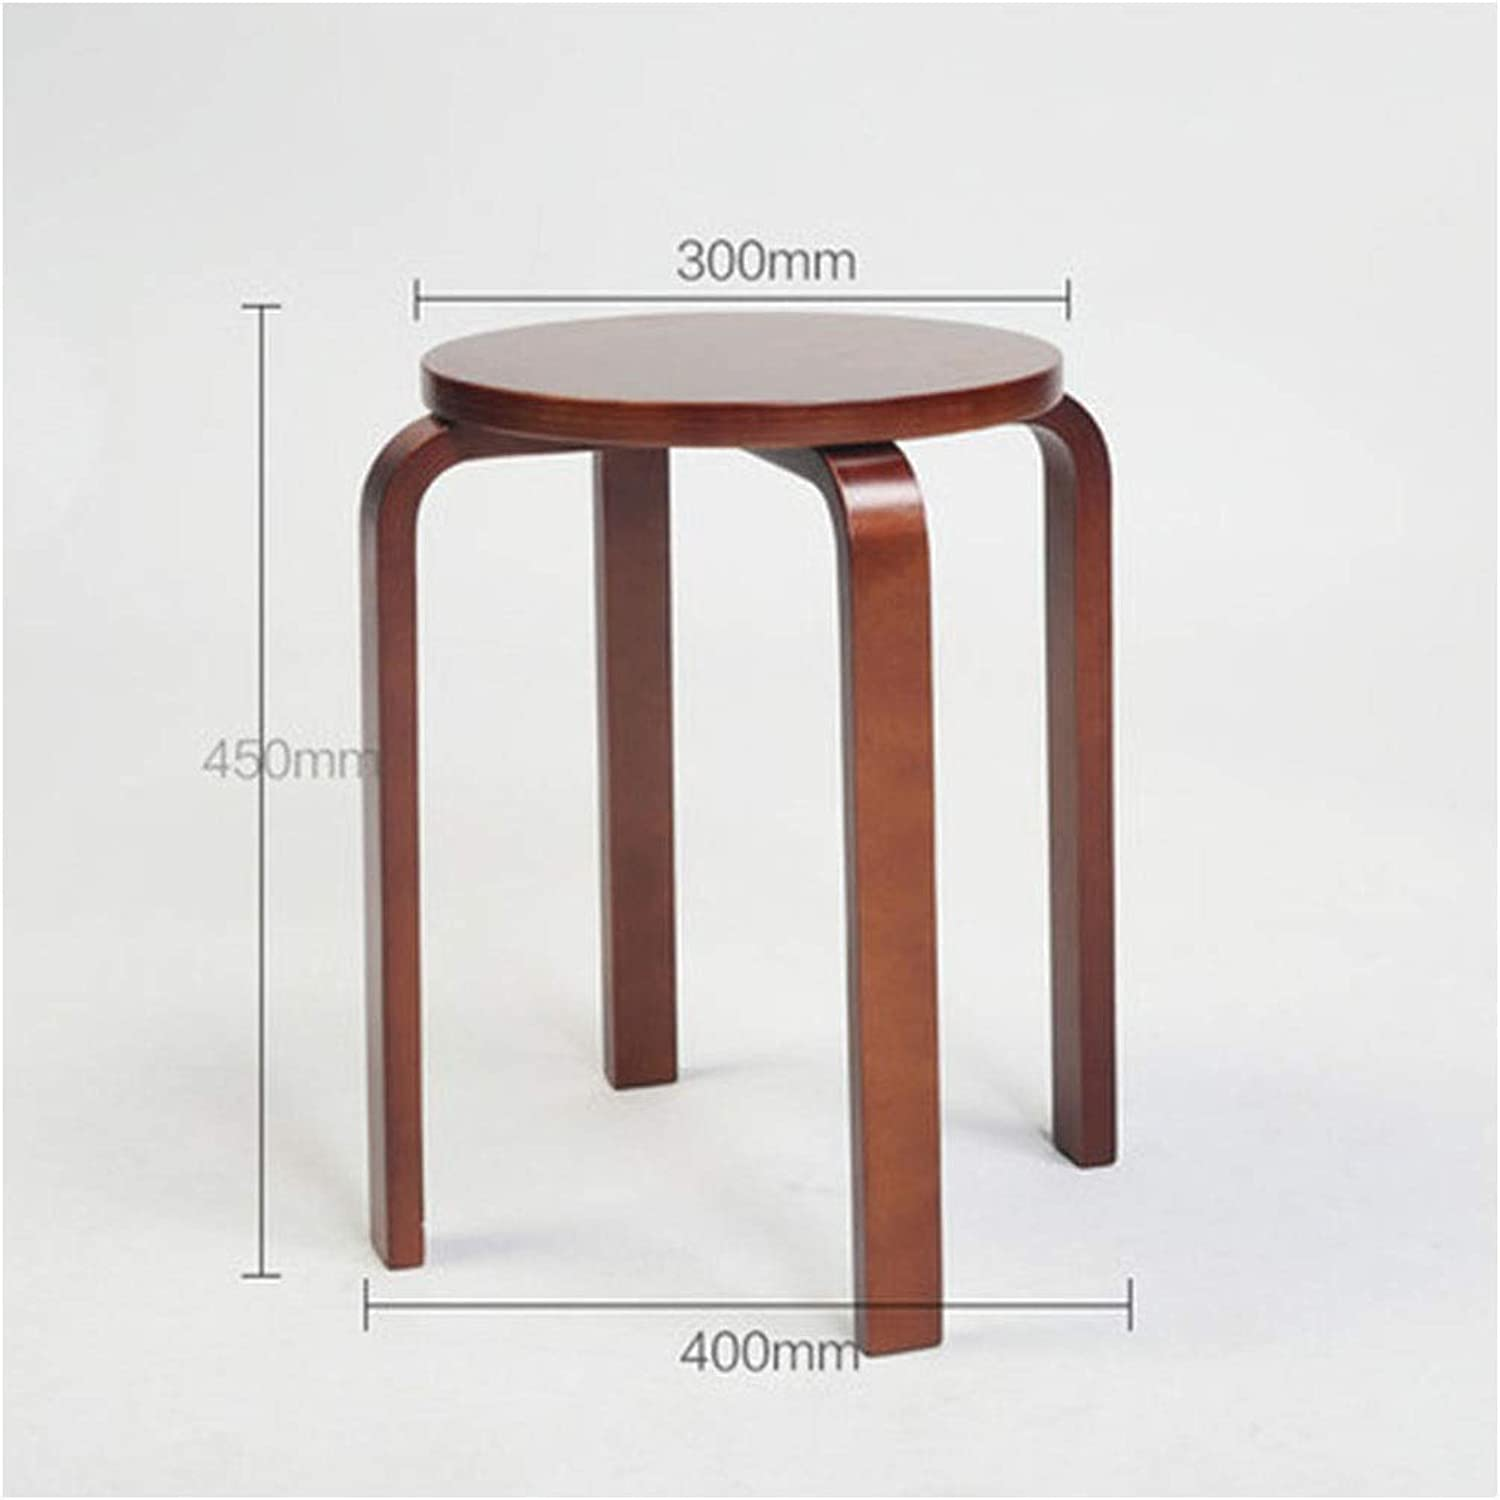 B.YDCM Wooden Bench- Stool Fashion Creative Home Stool Small Bench Wooden Bench Dining Table Stool Living Room Stool - Wood Bench (color   B)